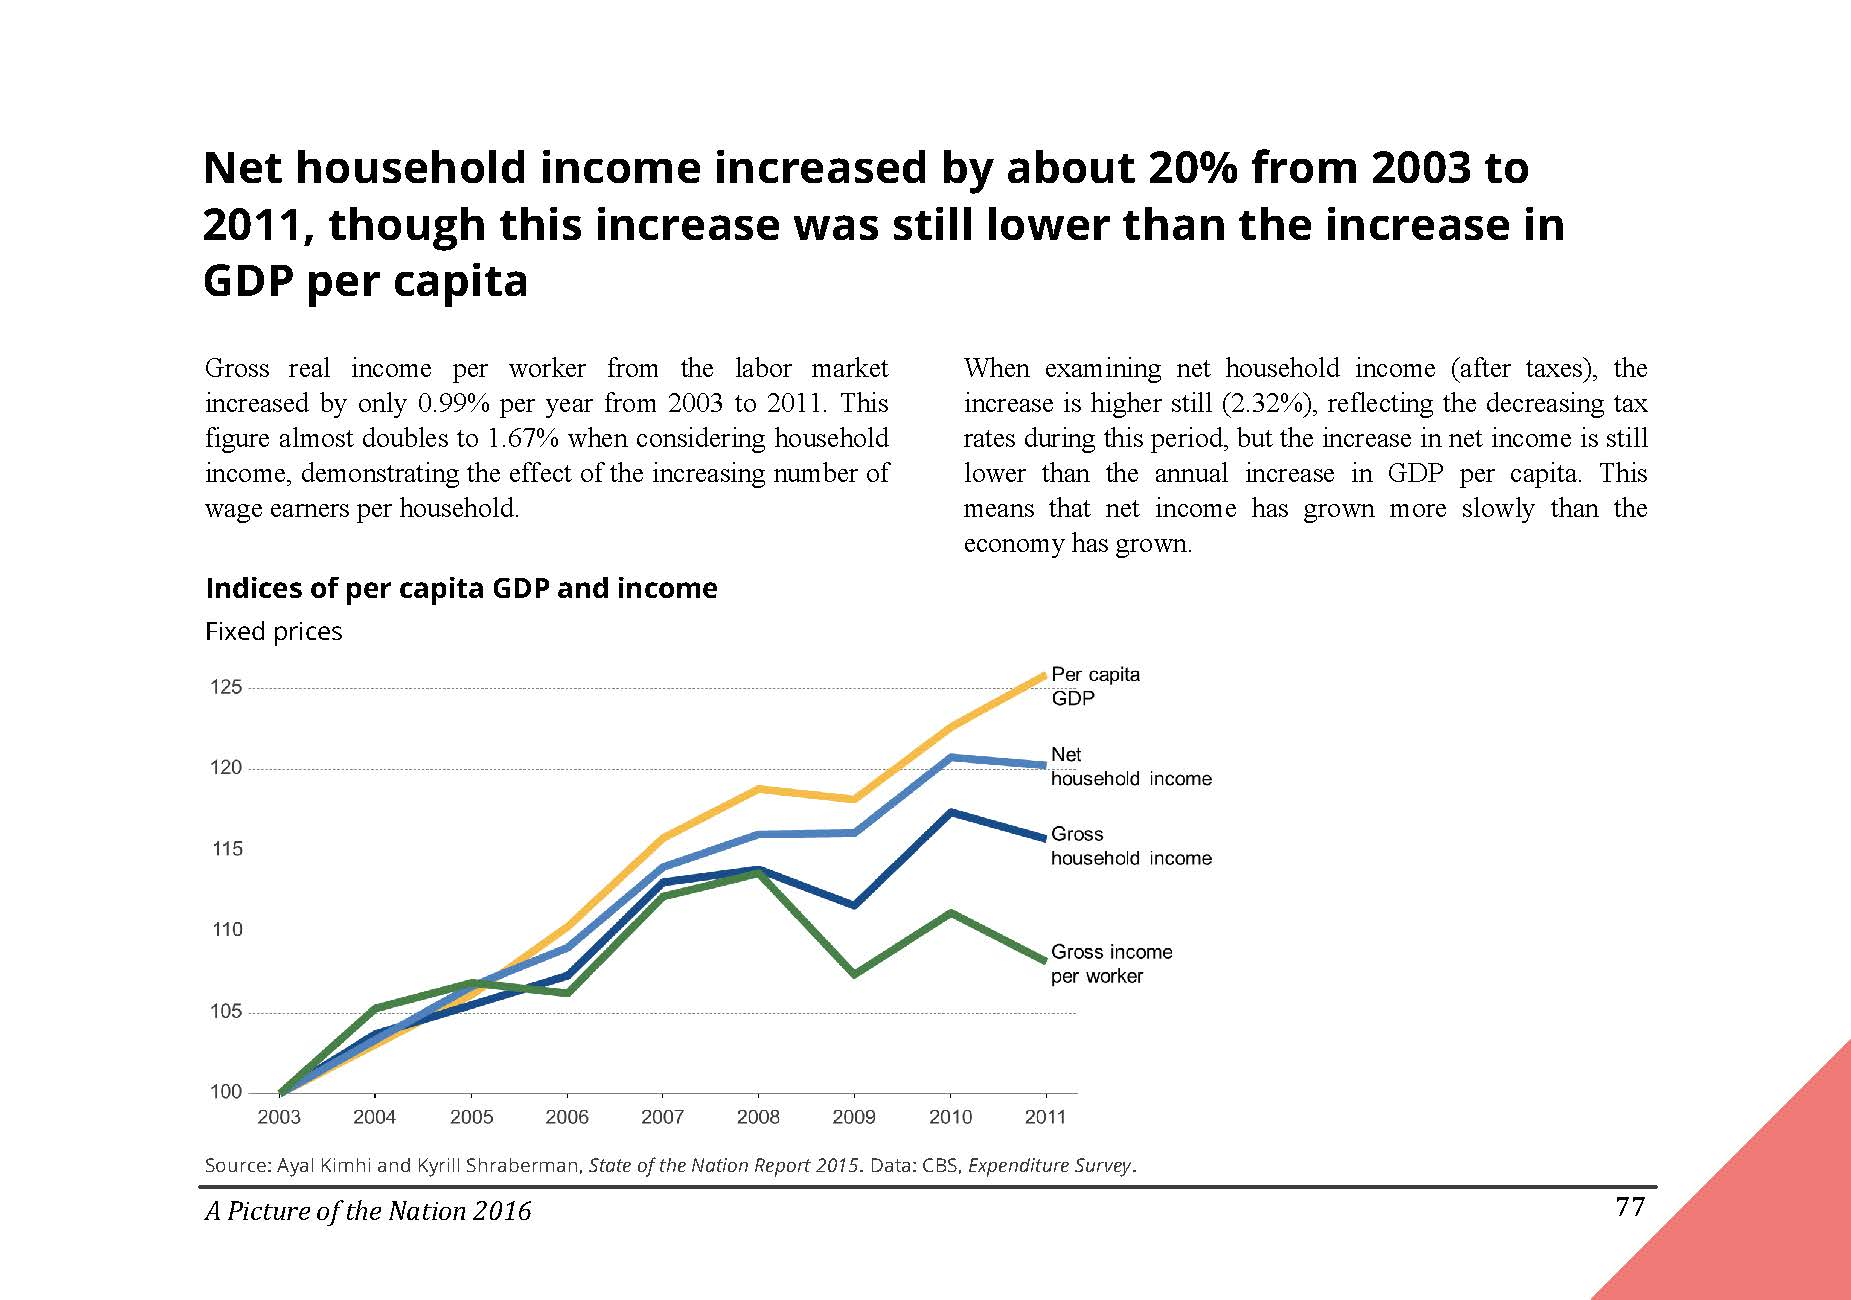 Net household income increased by about 20% from 2003 to 2011, though this increase was still lower than the increase in GDP per capita in Israel